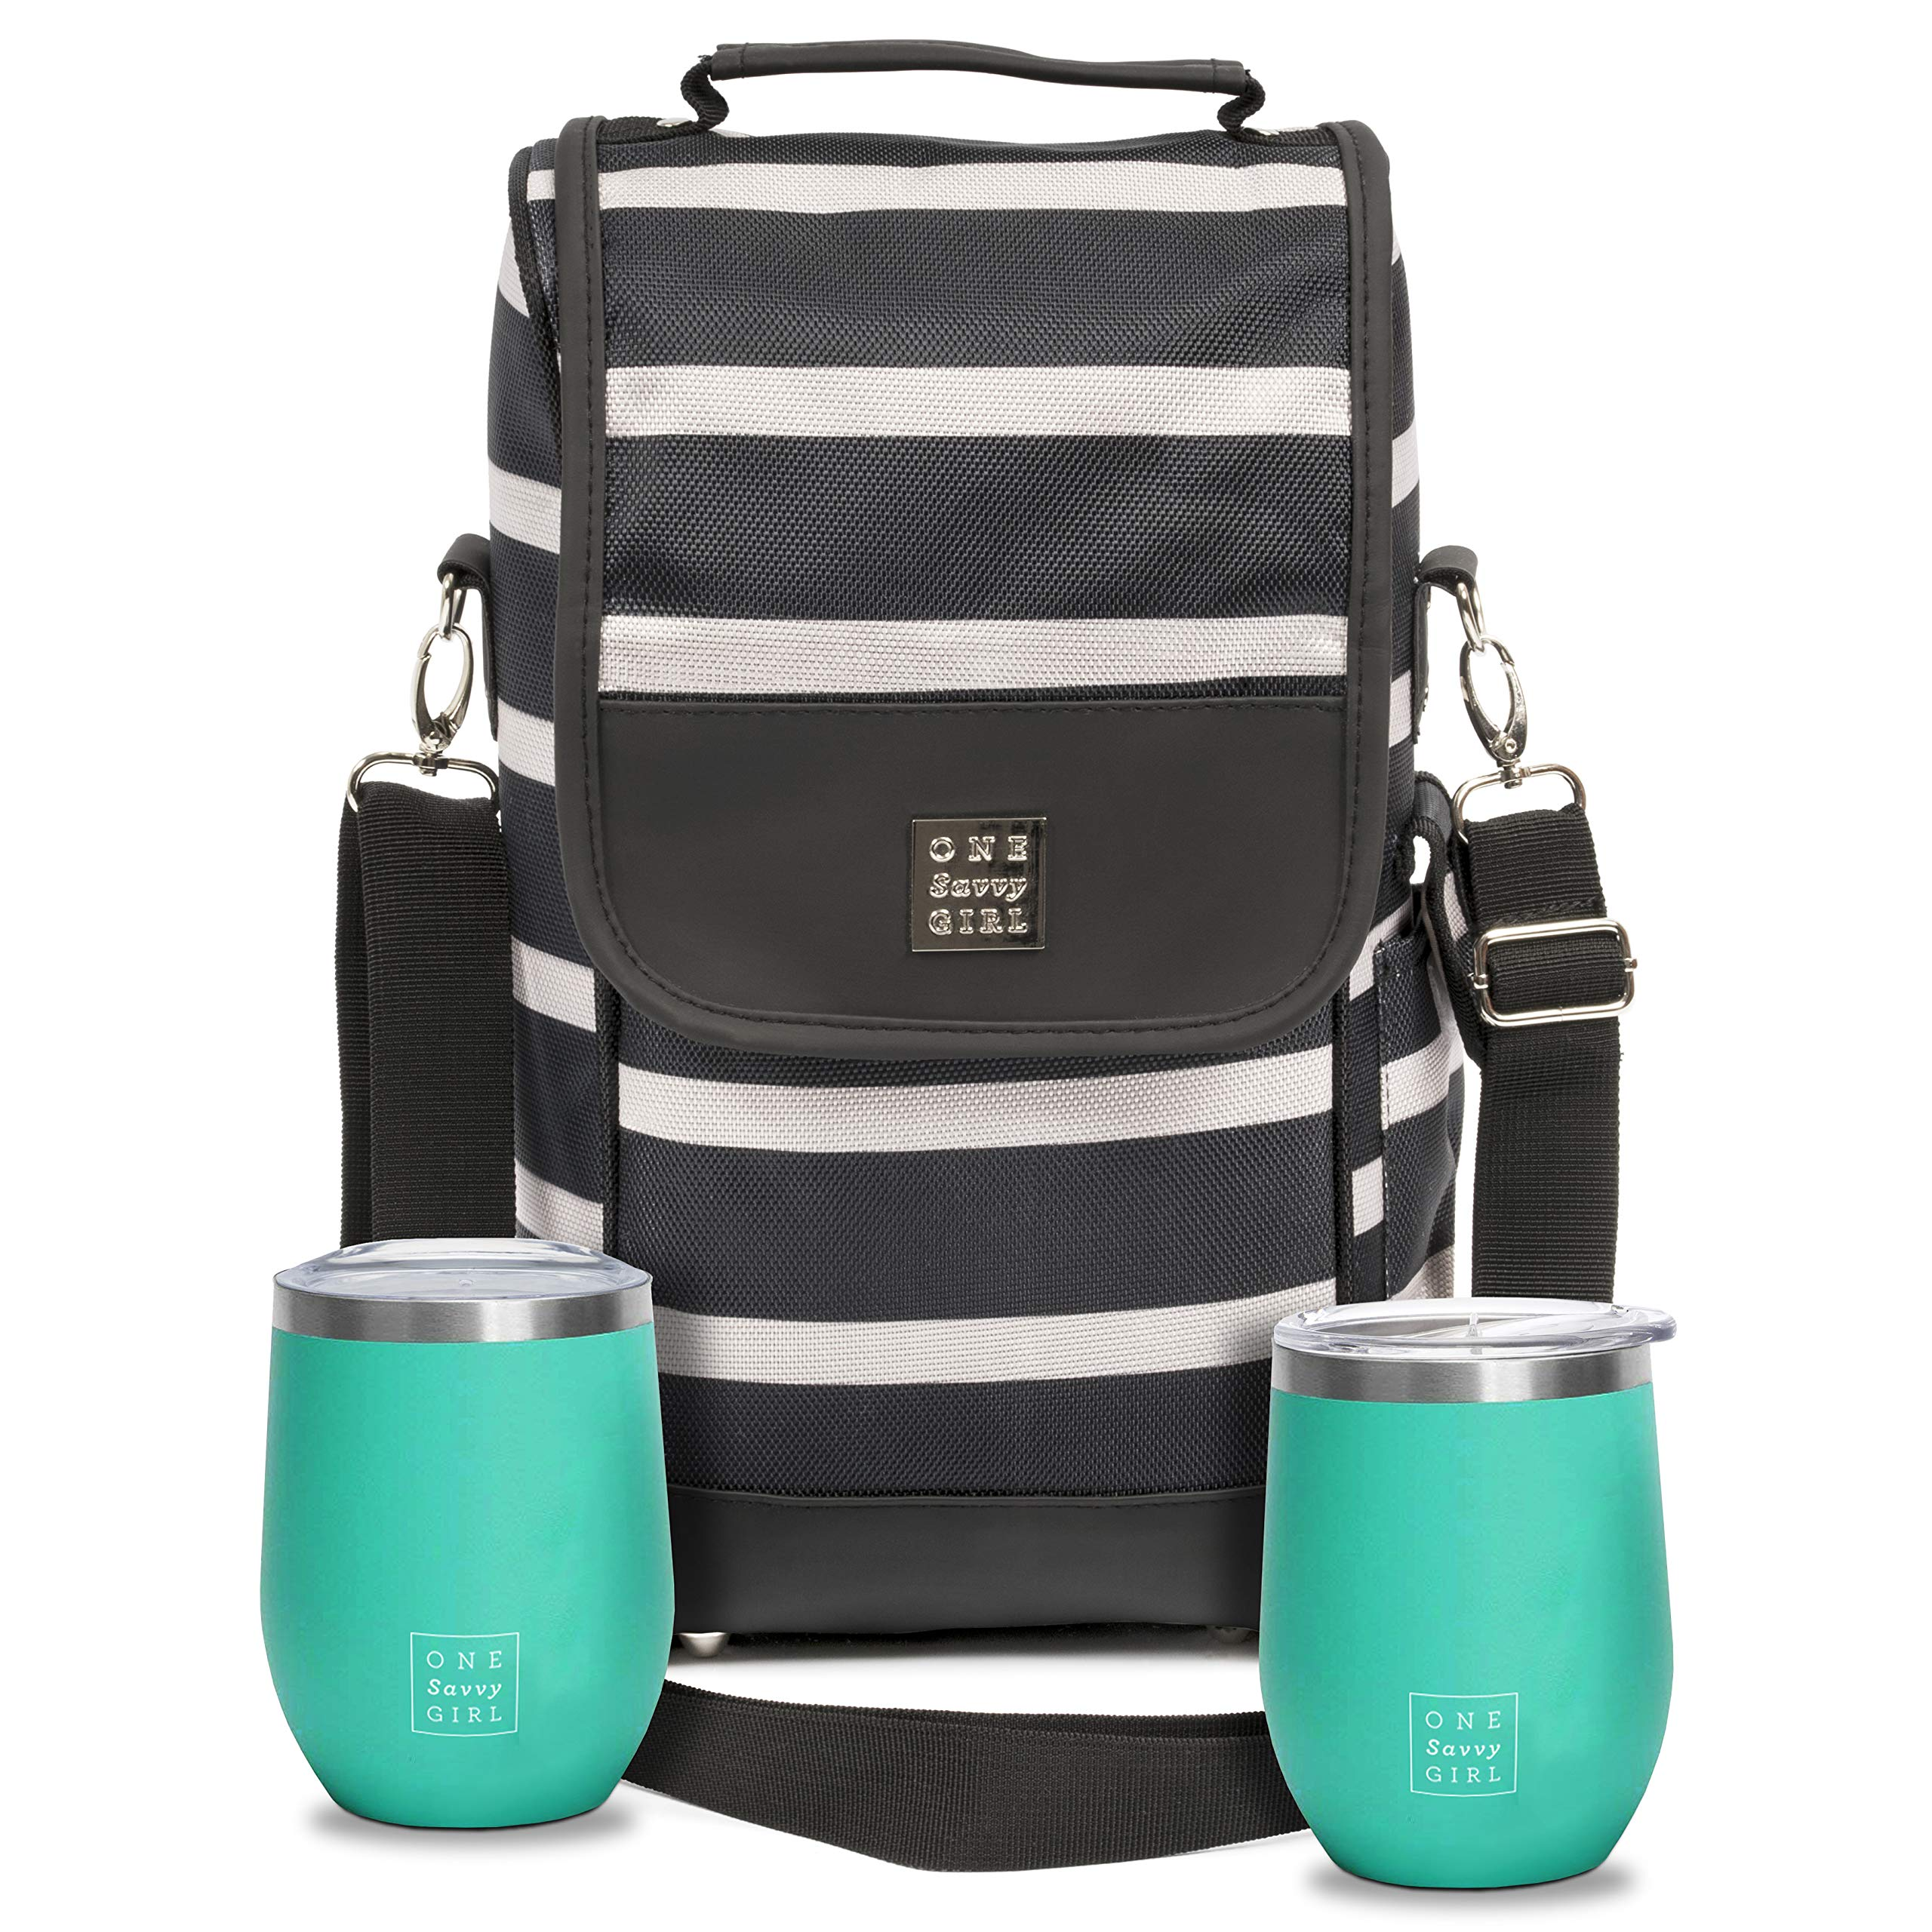 One Savvy Girl Wine Tote Bag with Stainless Steel Stemless Wine Glasses - 2 Bottle Wine Carrier Purse - Perfect for Travel, Events, Beach, Pool, Picnic & More - Great Gift for Women and Wine Lovers